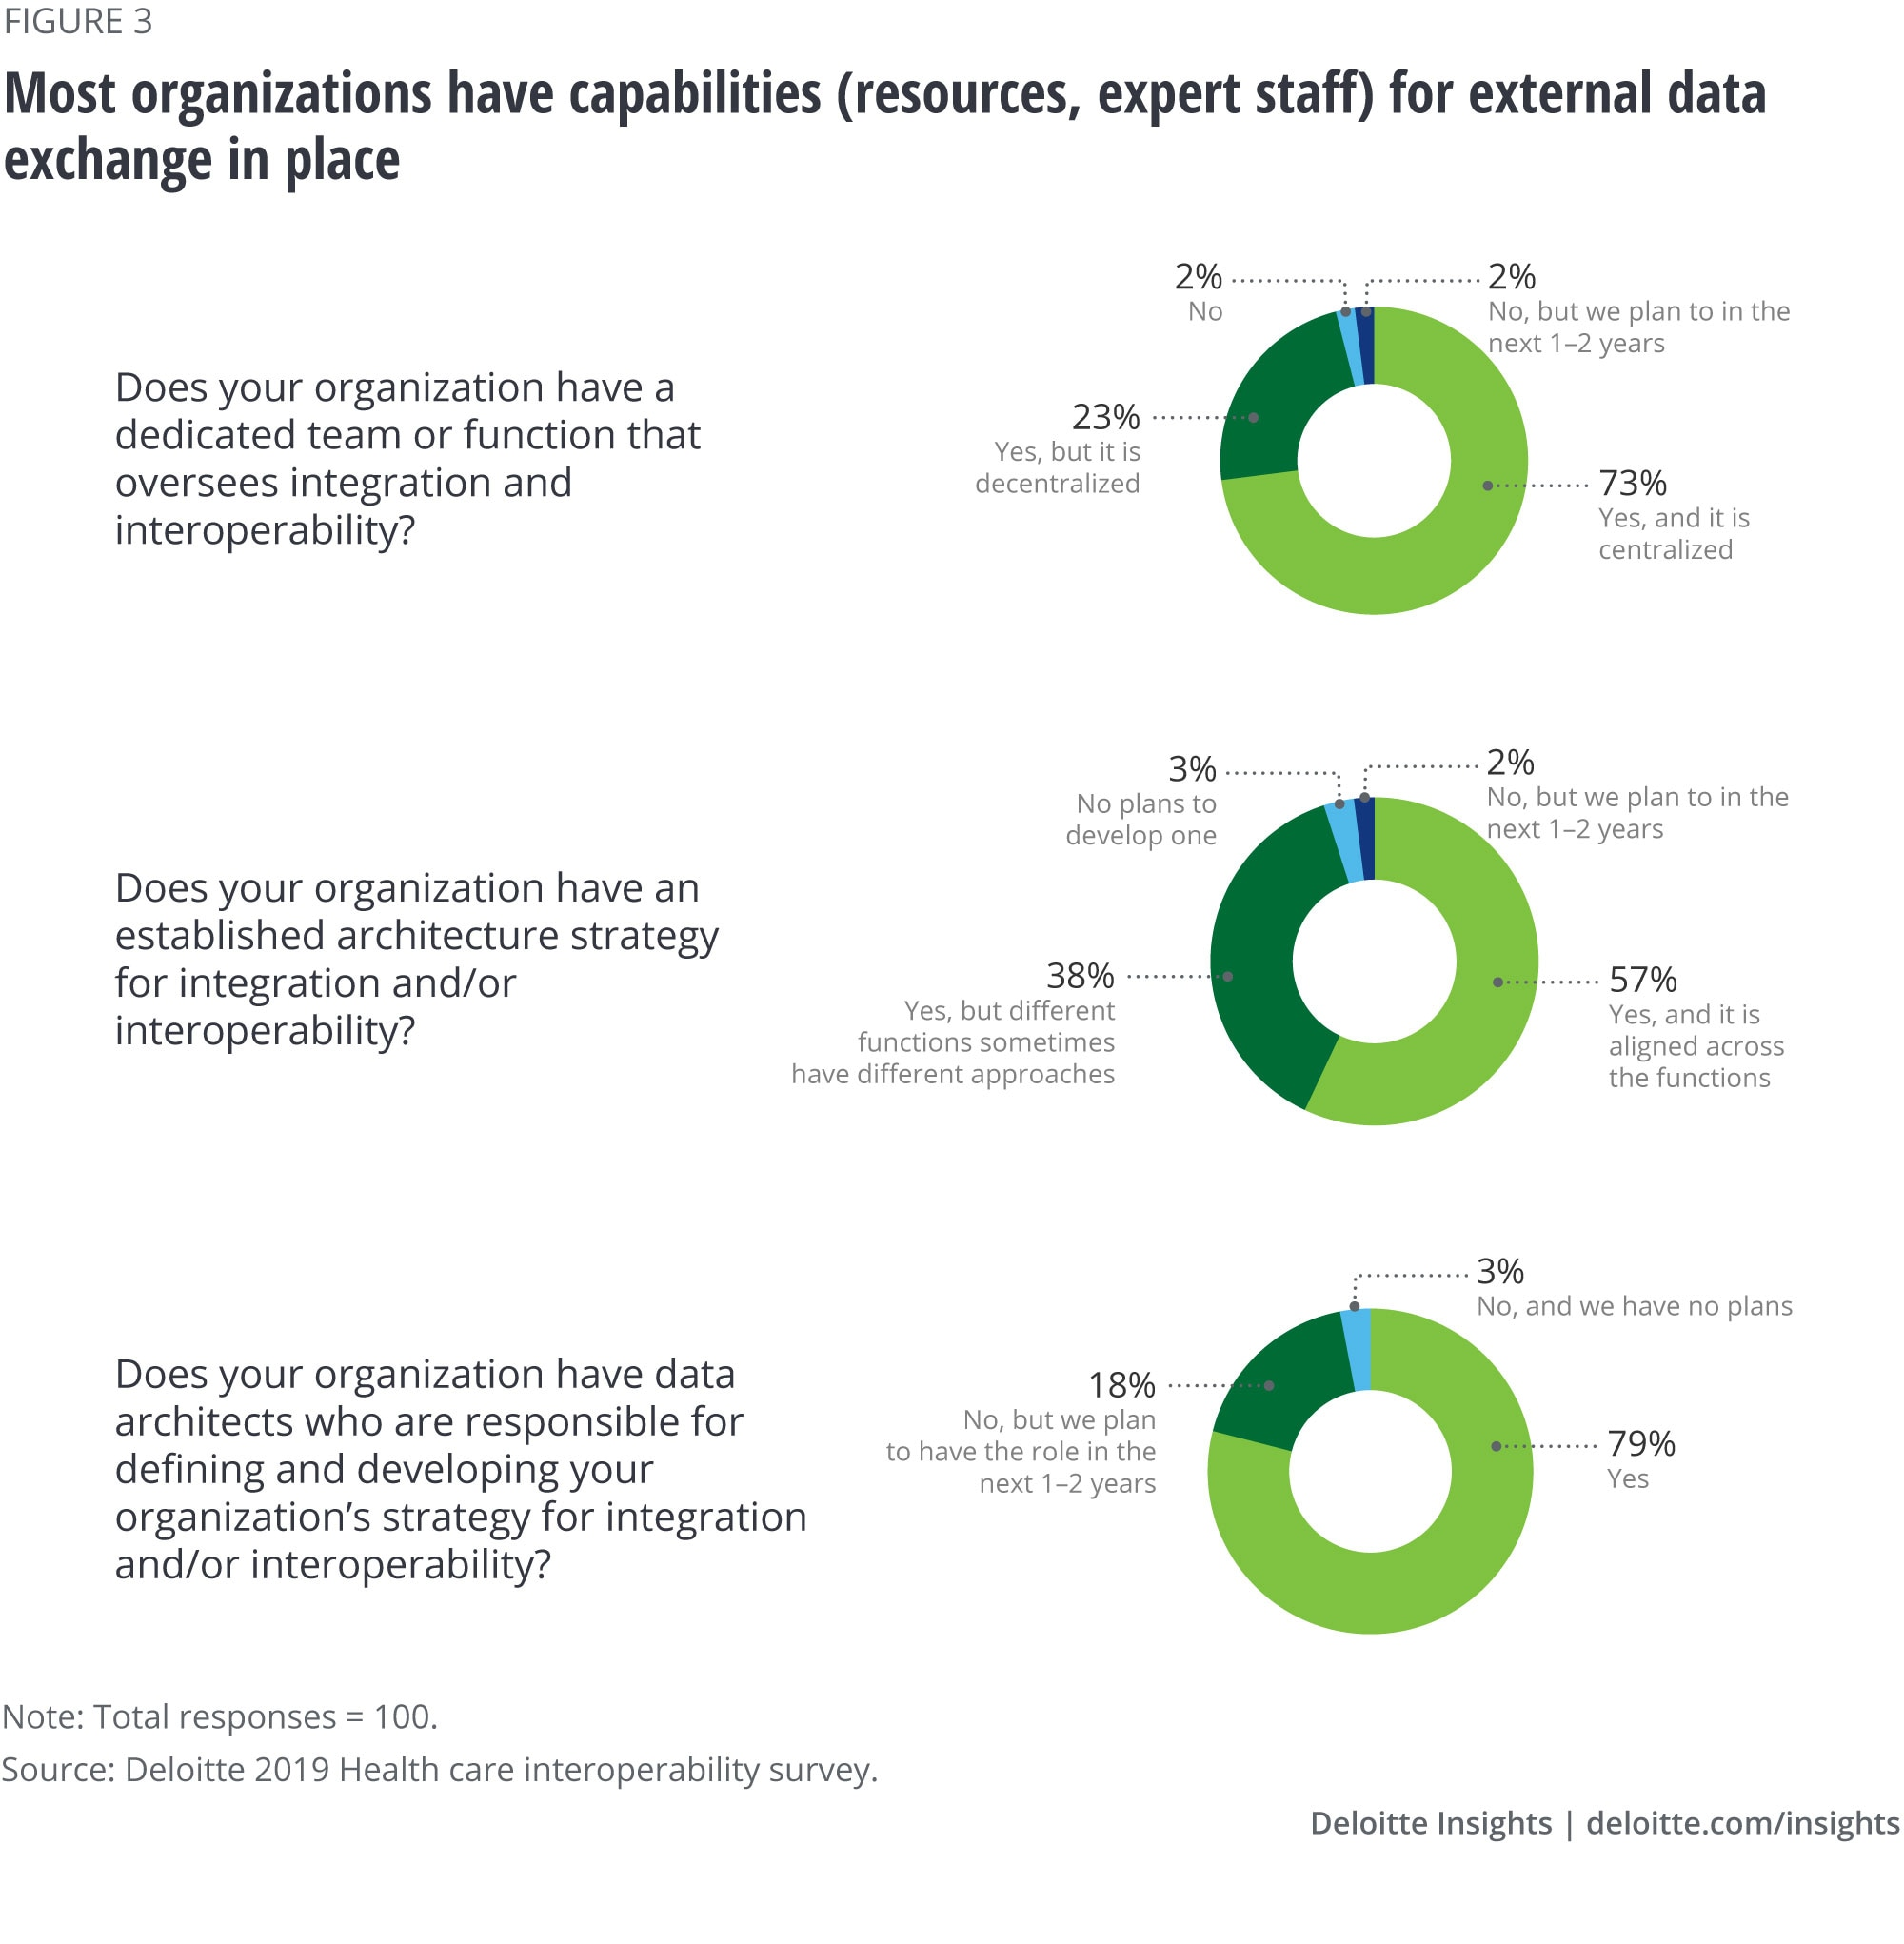 Most organizations have capabilities (resources, expert staff) for external data exchange in place